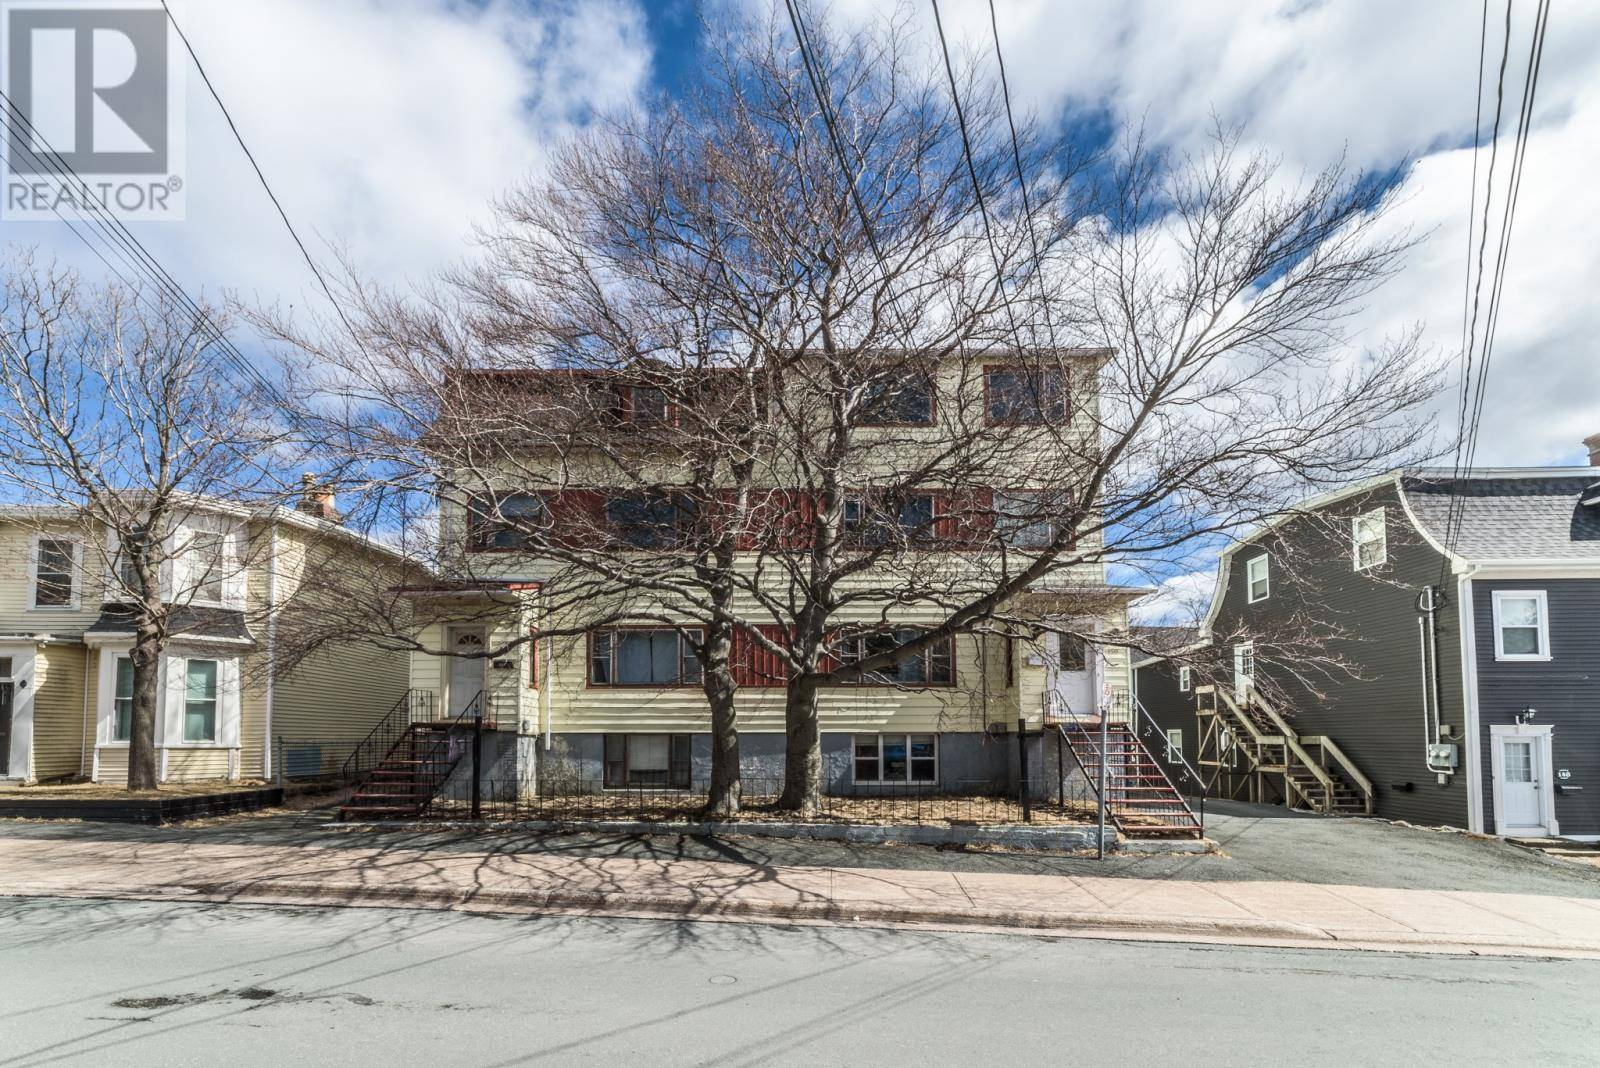 Townhouse for sale at 150 Patrick St St. John's Newfoundland - MLS: 1206879